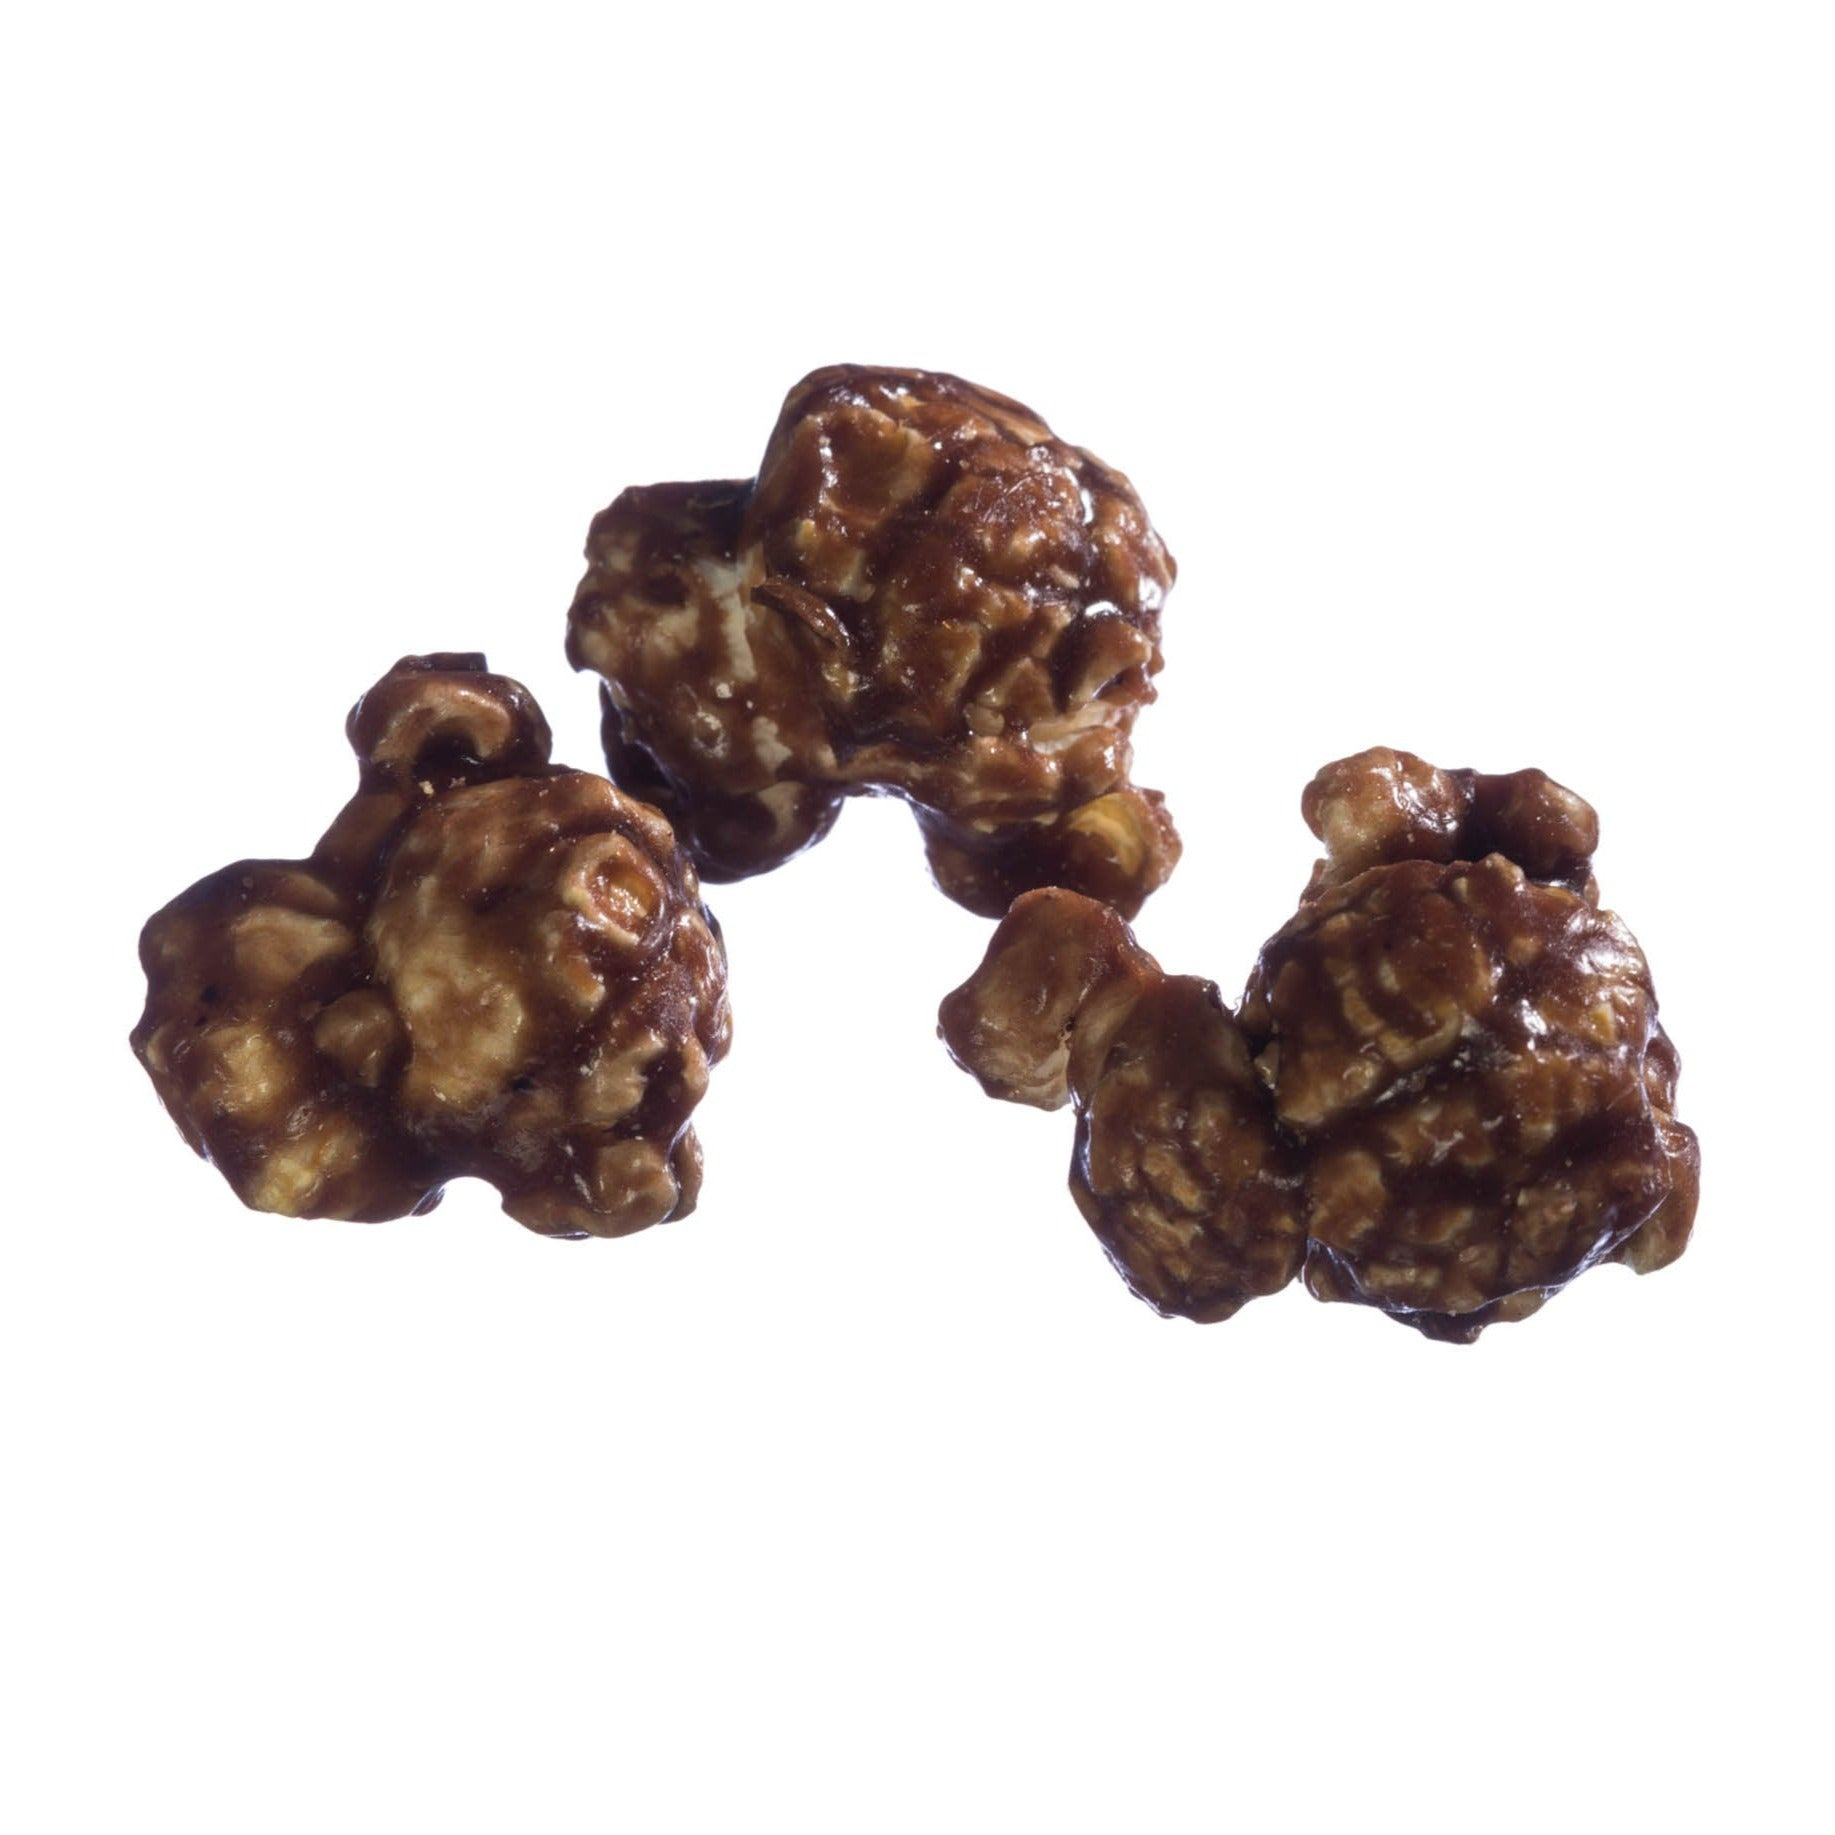 Chocolate Popcorn – Grand Rapids Popcorn